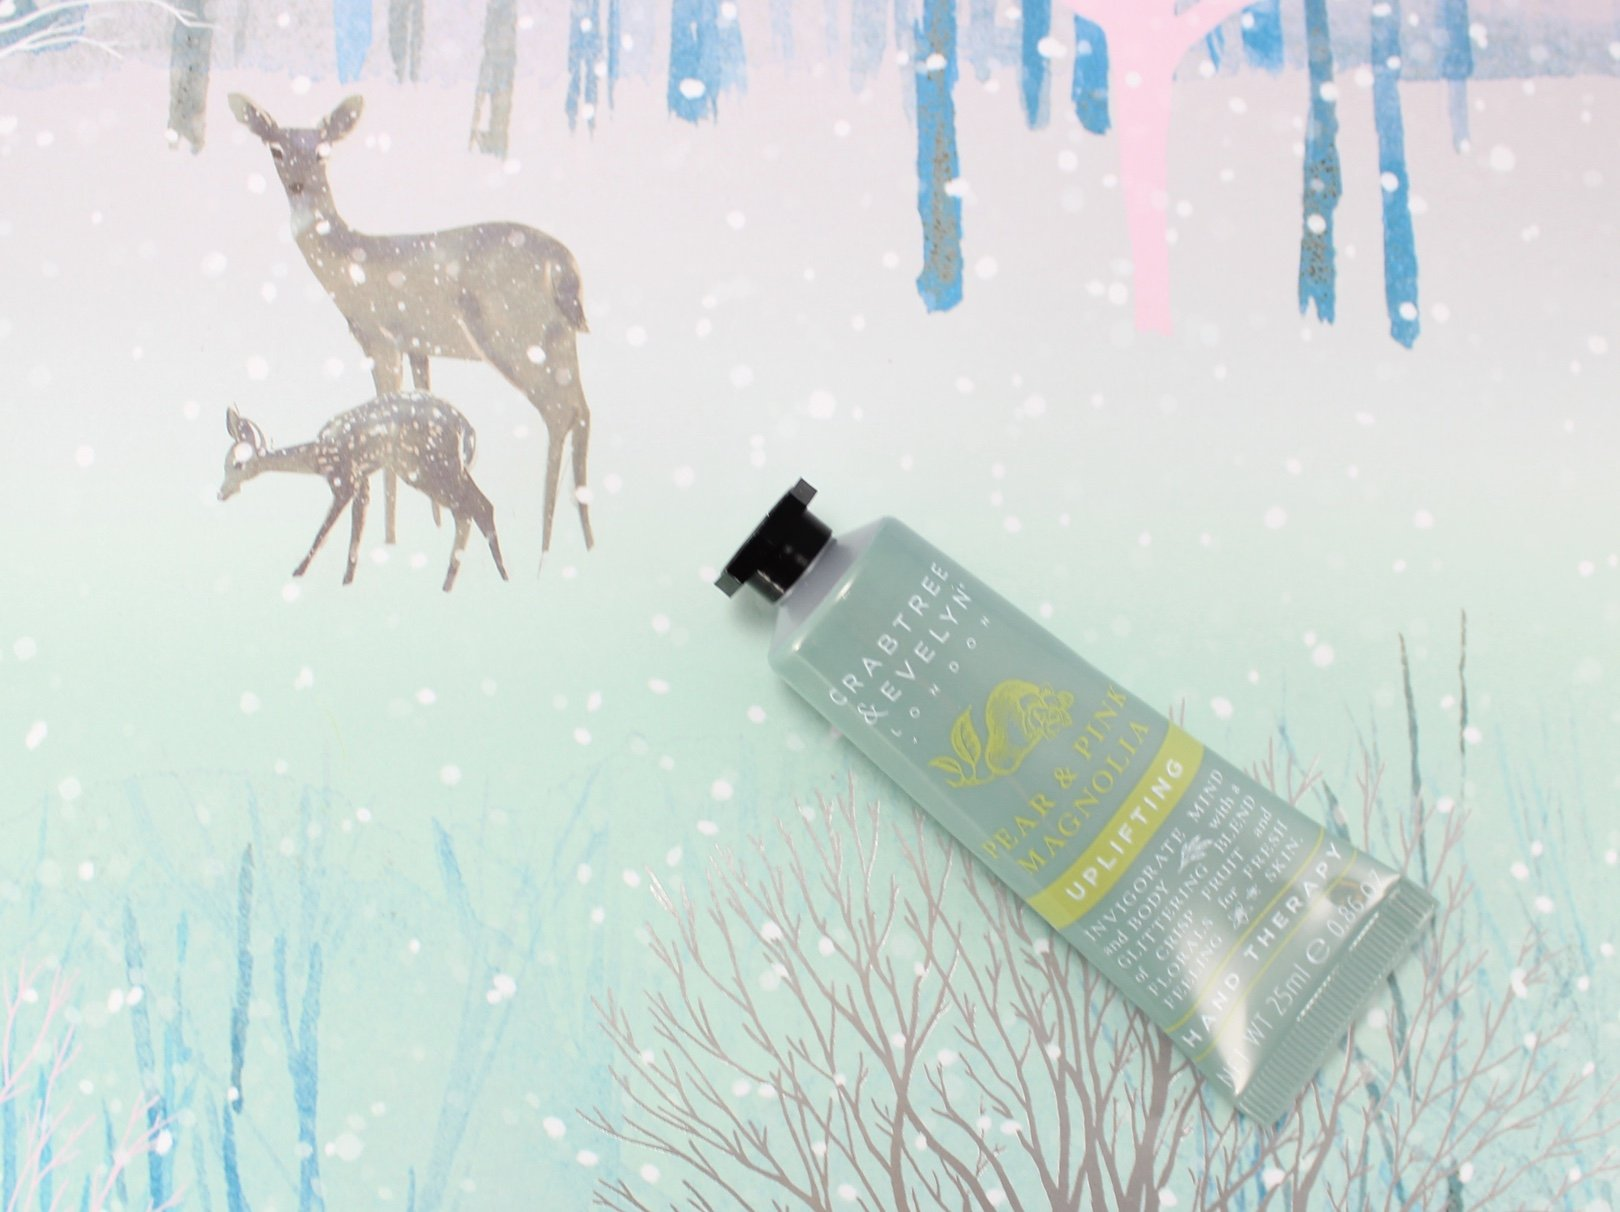 12 days of crabtree & evelyn advent calendar – day 10